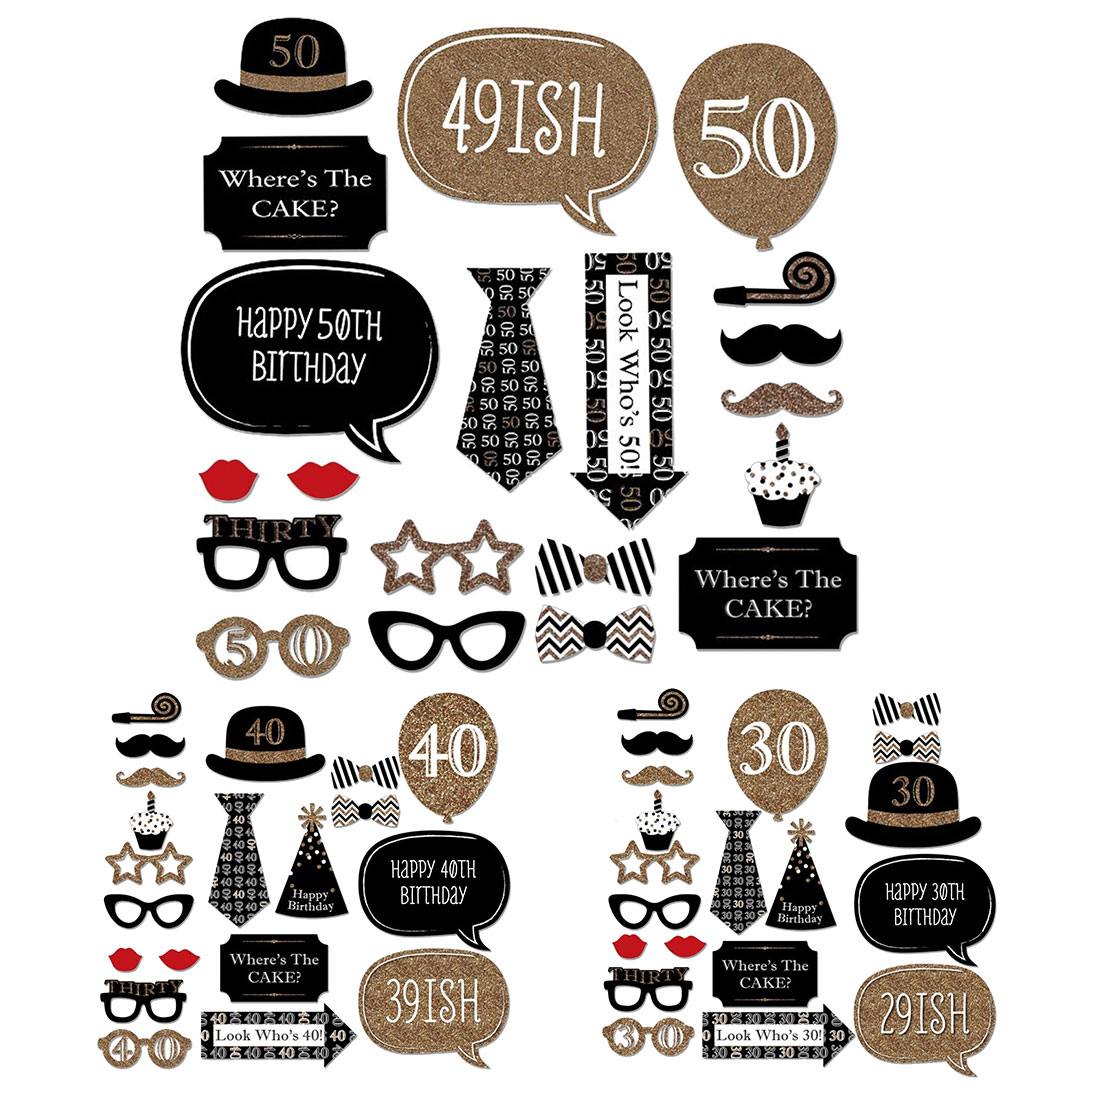 30th 40th 50th Happy Birthday Party Supplies Photo Booth Props 30 40 50 Years Man Woman birthday party decorations photobooth